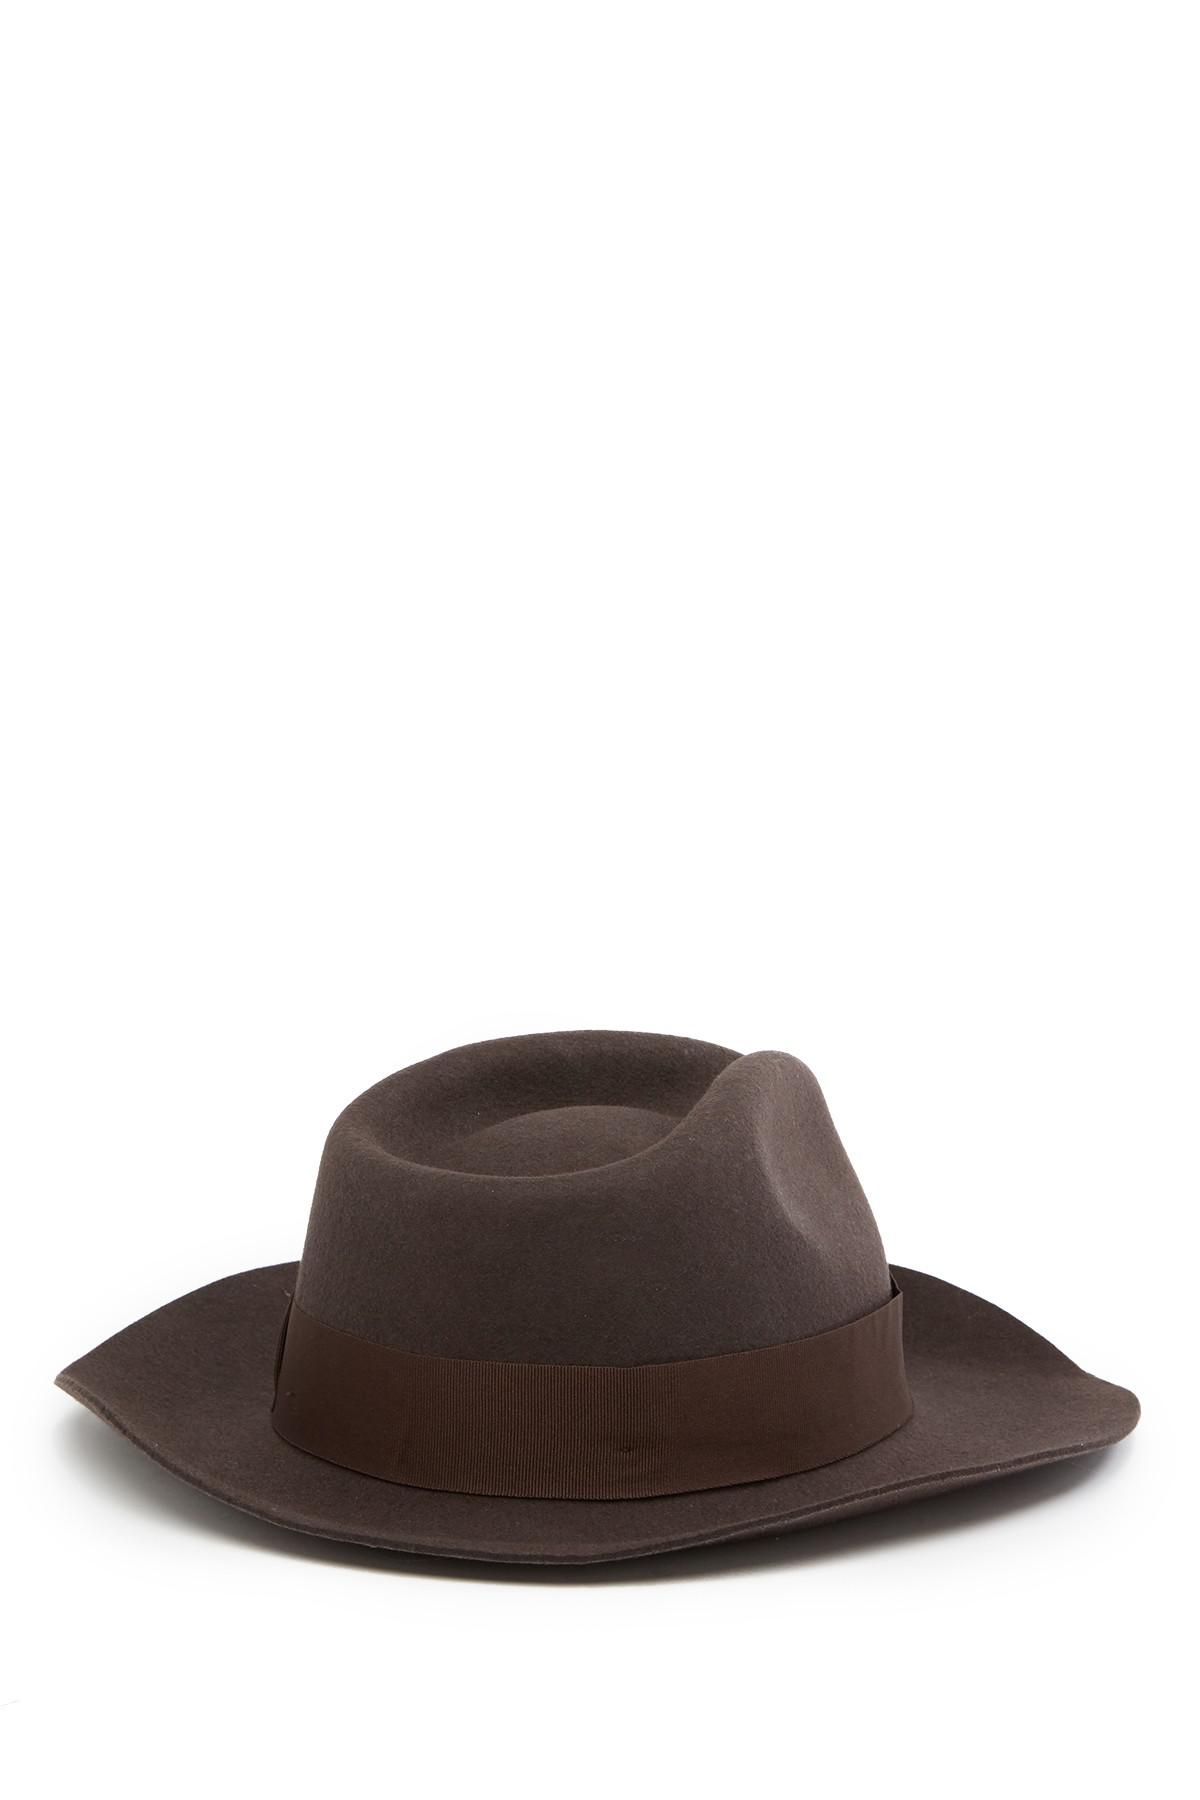 8f460c665bfb2 Lyst - Goorin Bros Curly Wool Fedora in Brown for Men